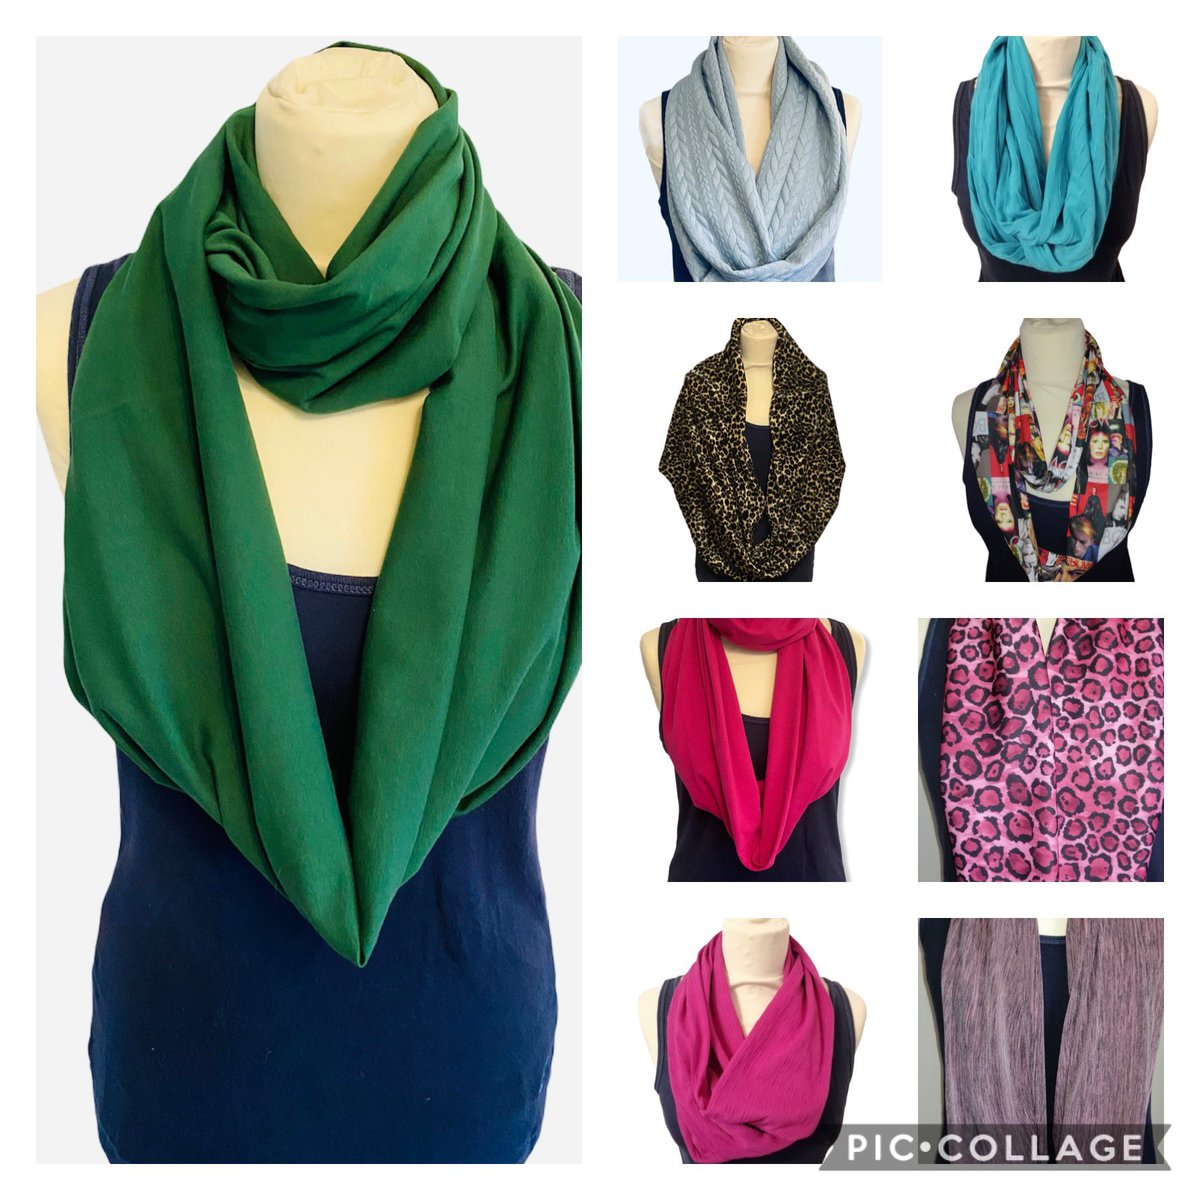 Wrap up warm!! It's chilly outside.  #infinityscarves #WINTER #twistscarf #outdoor #homemade